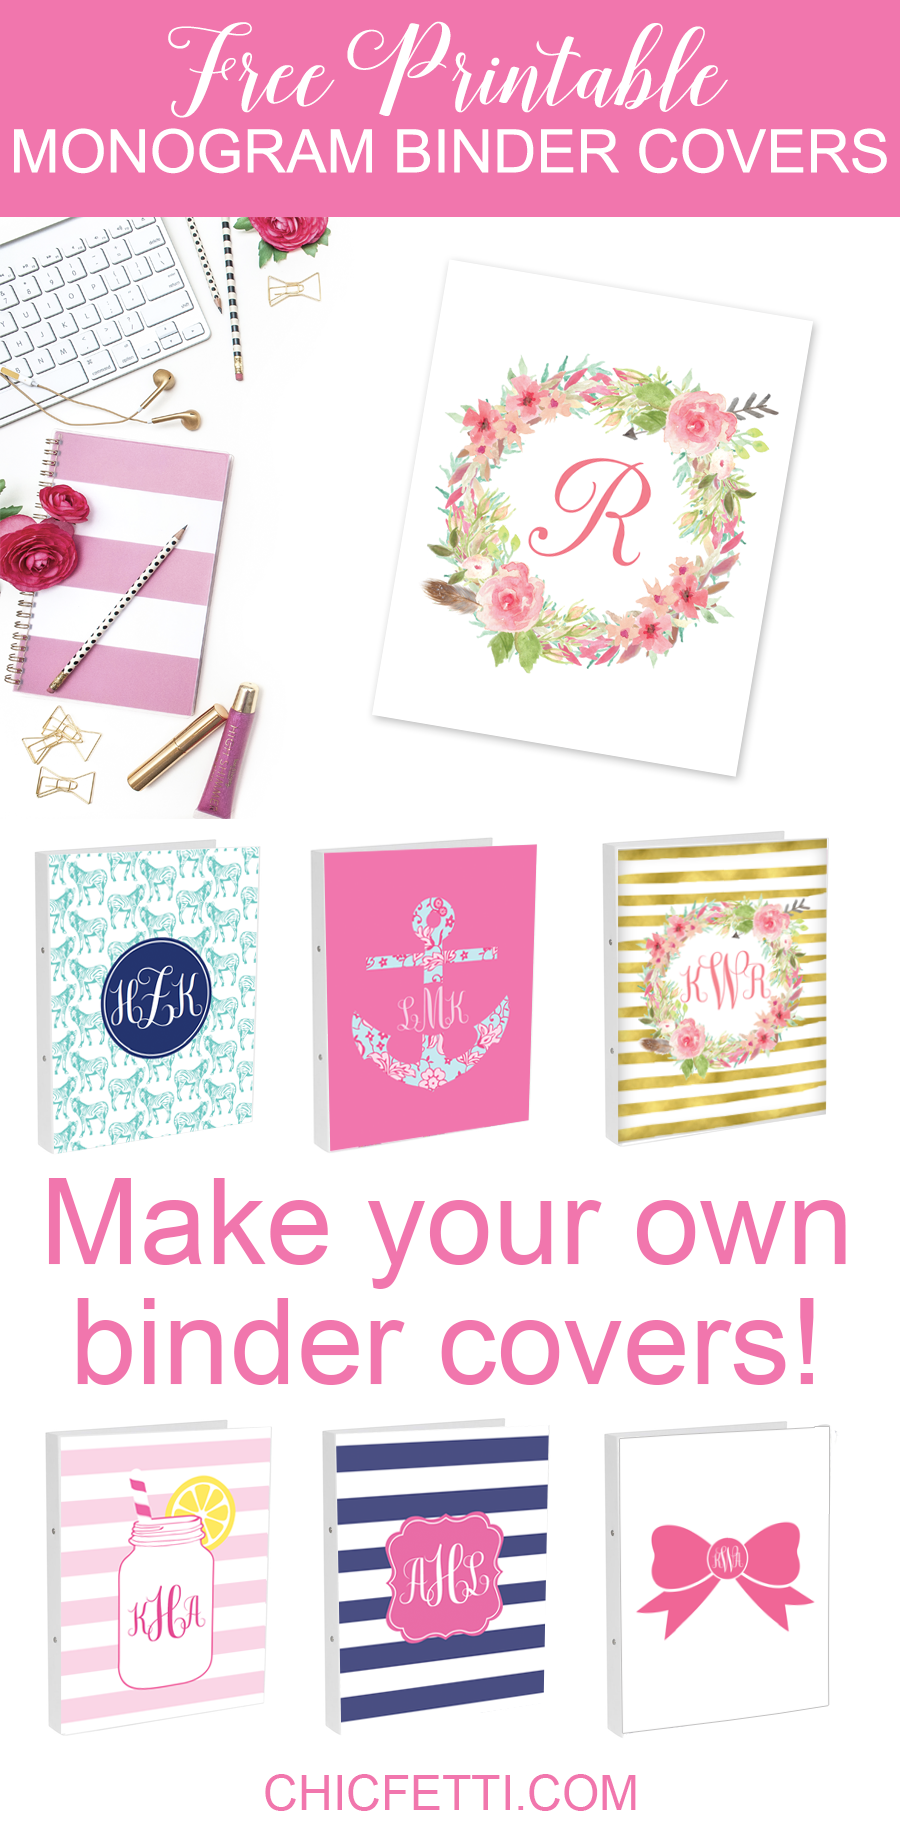 Book Cover Printable Zip : Diy monogram binder covers using free maker